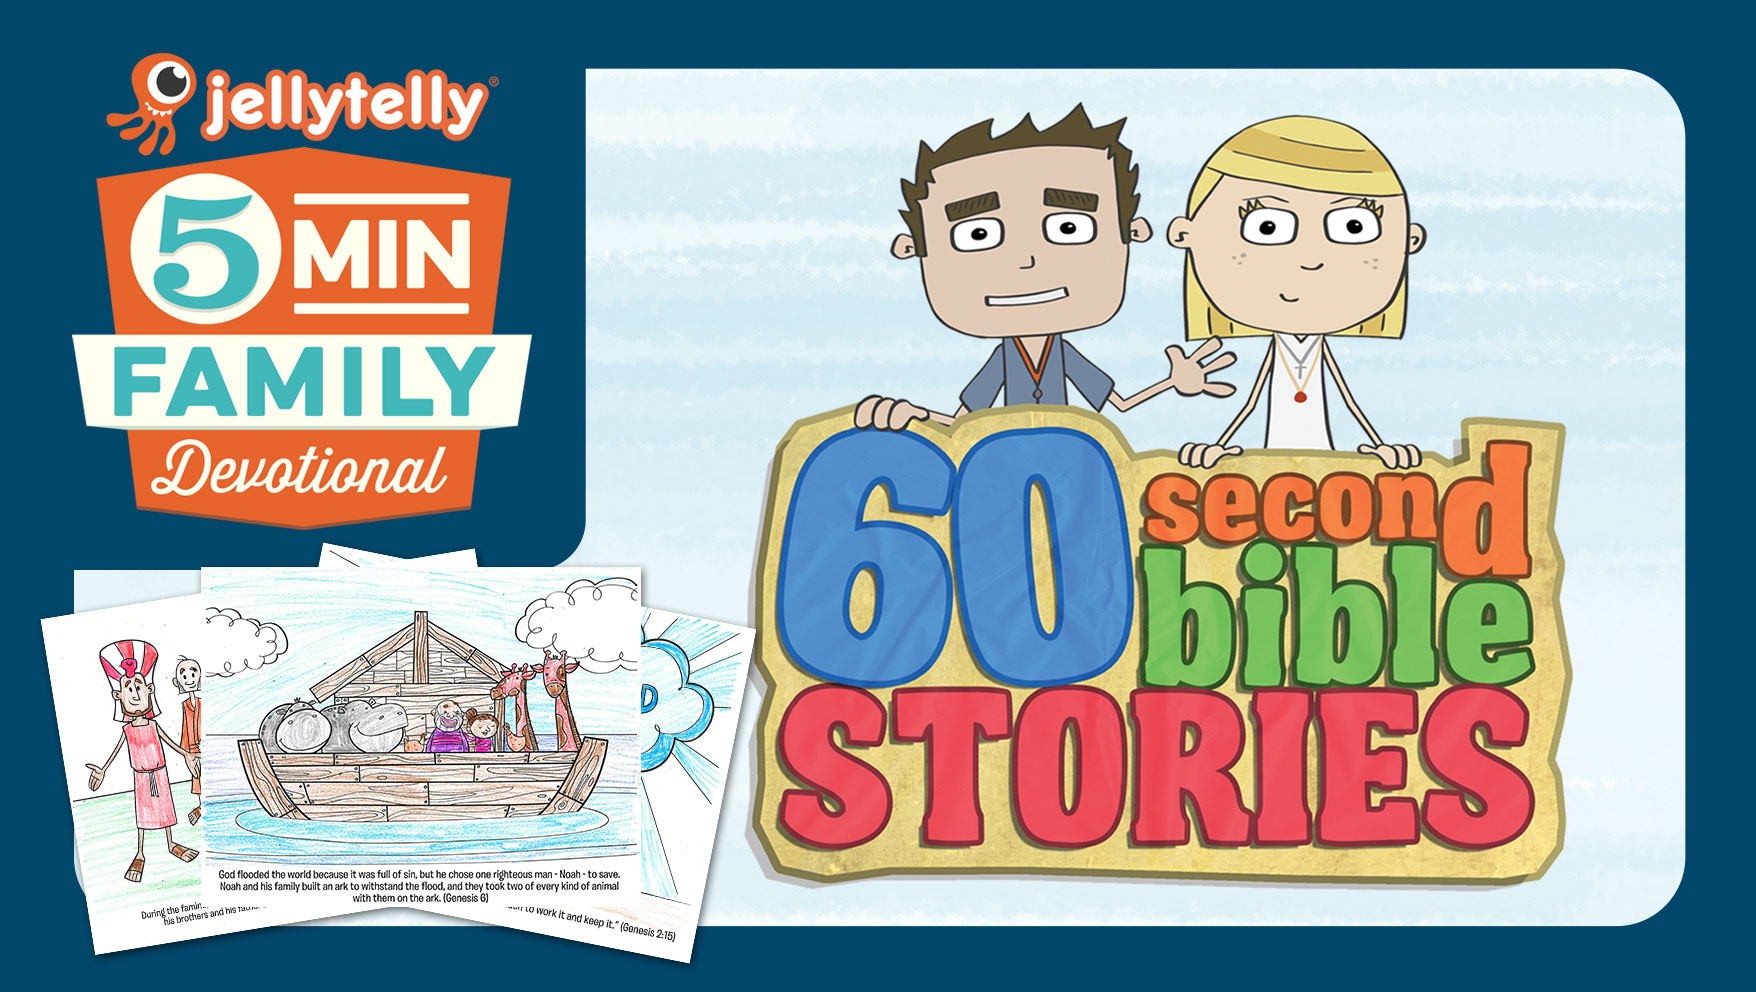 60 Second Bible Stories - A New 5 Minute Family Devotional Plan